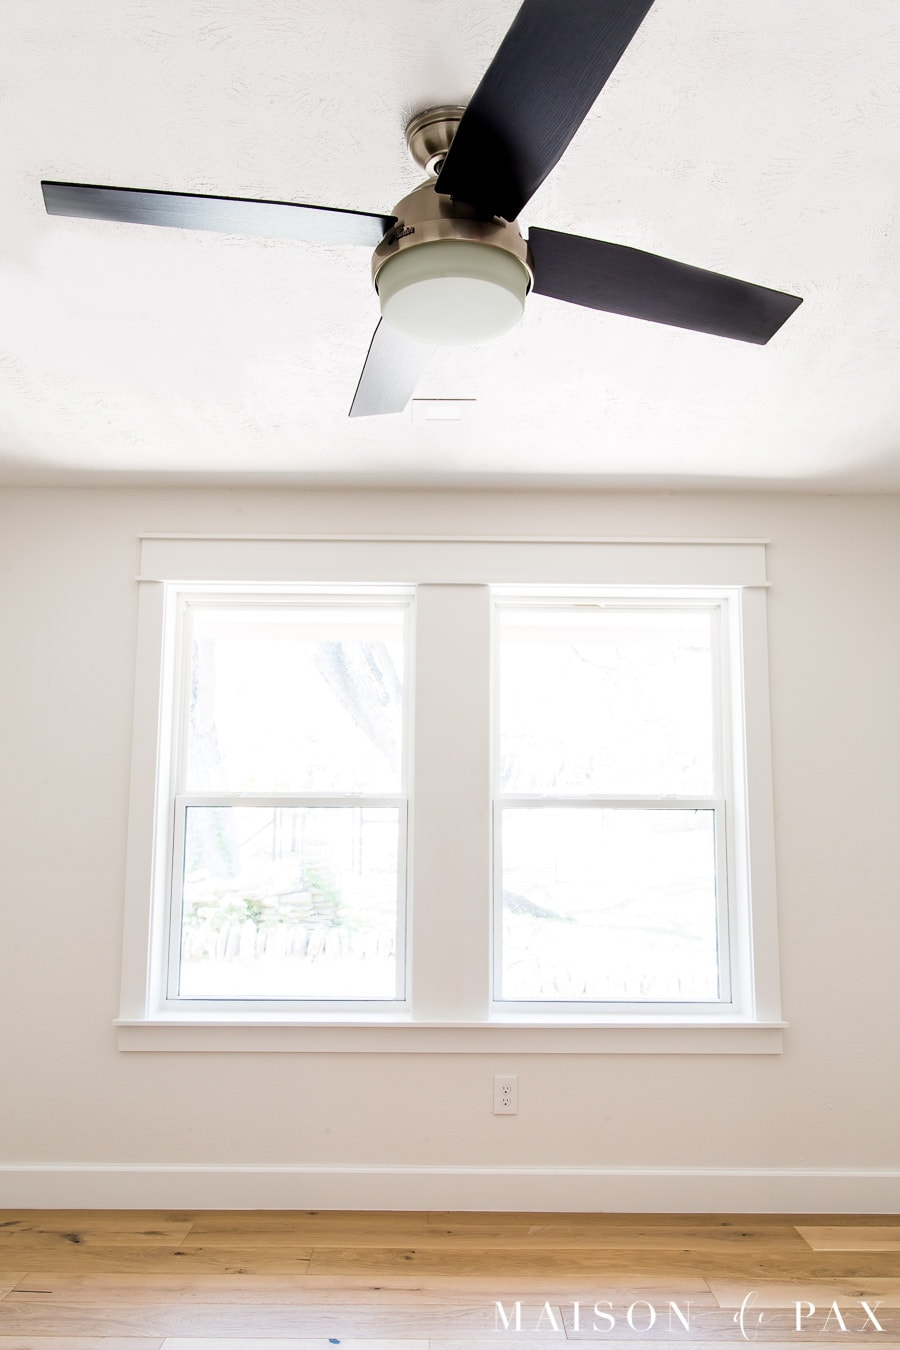 low profile ceiling fan with nickel housing and black blades